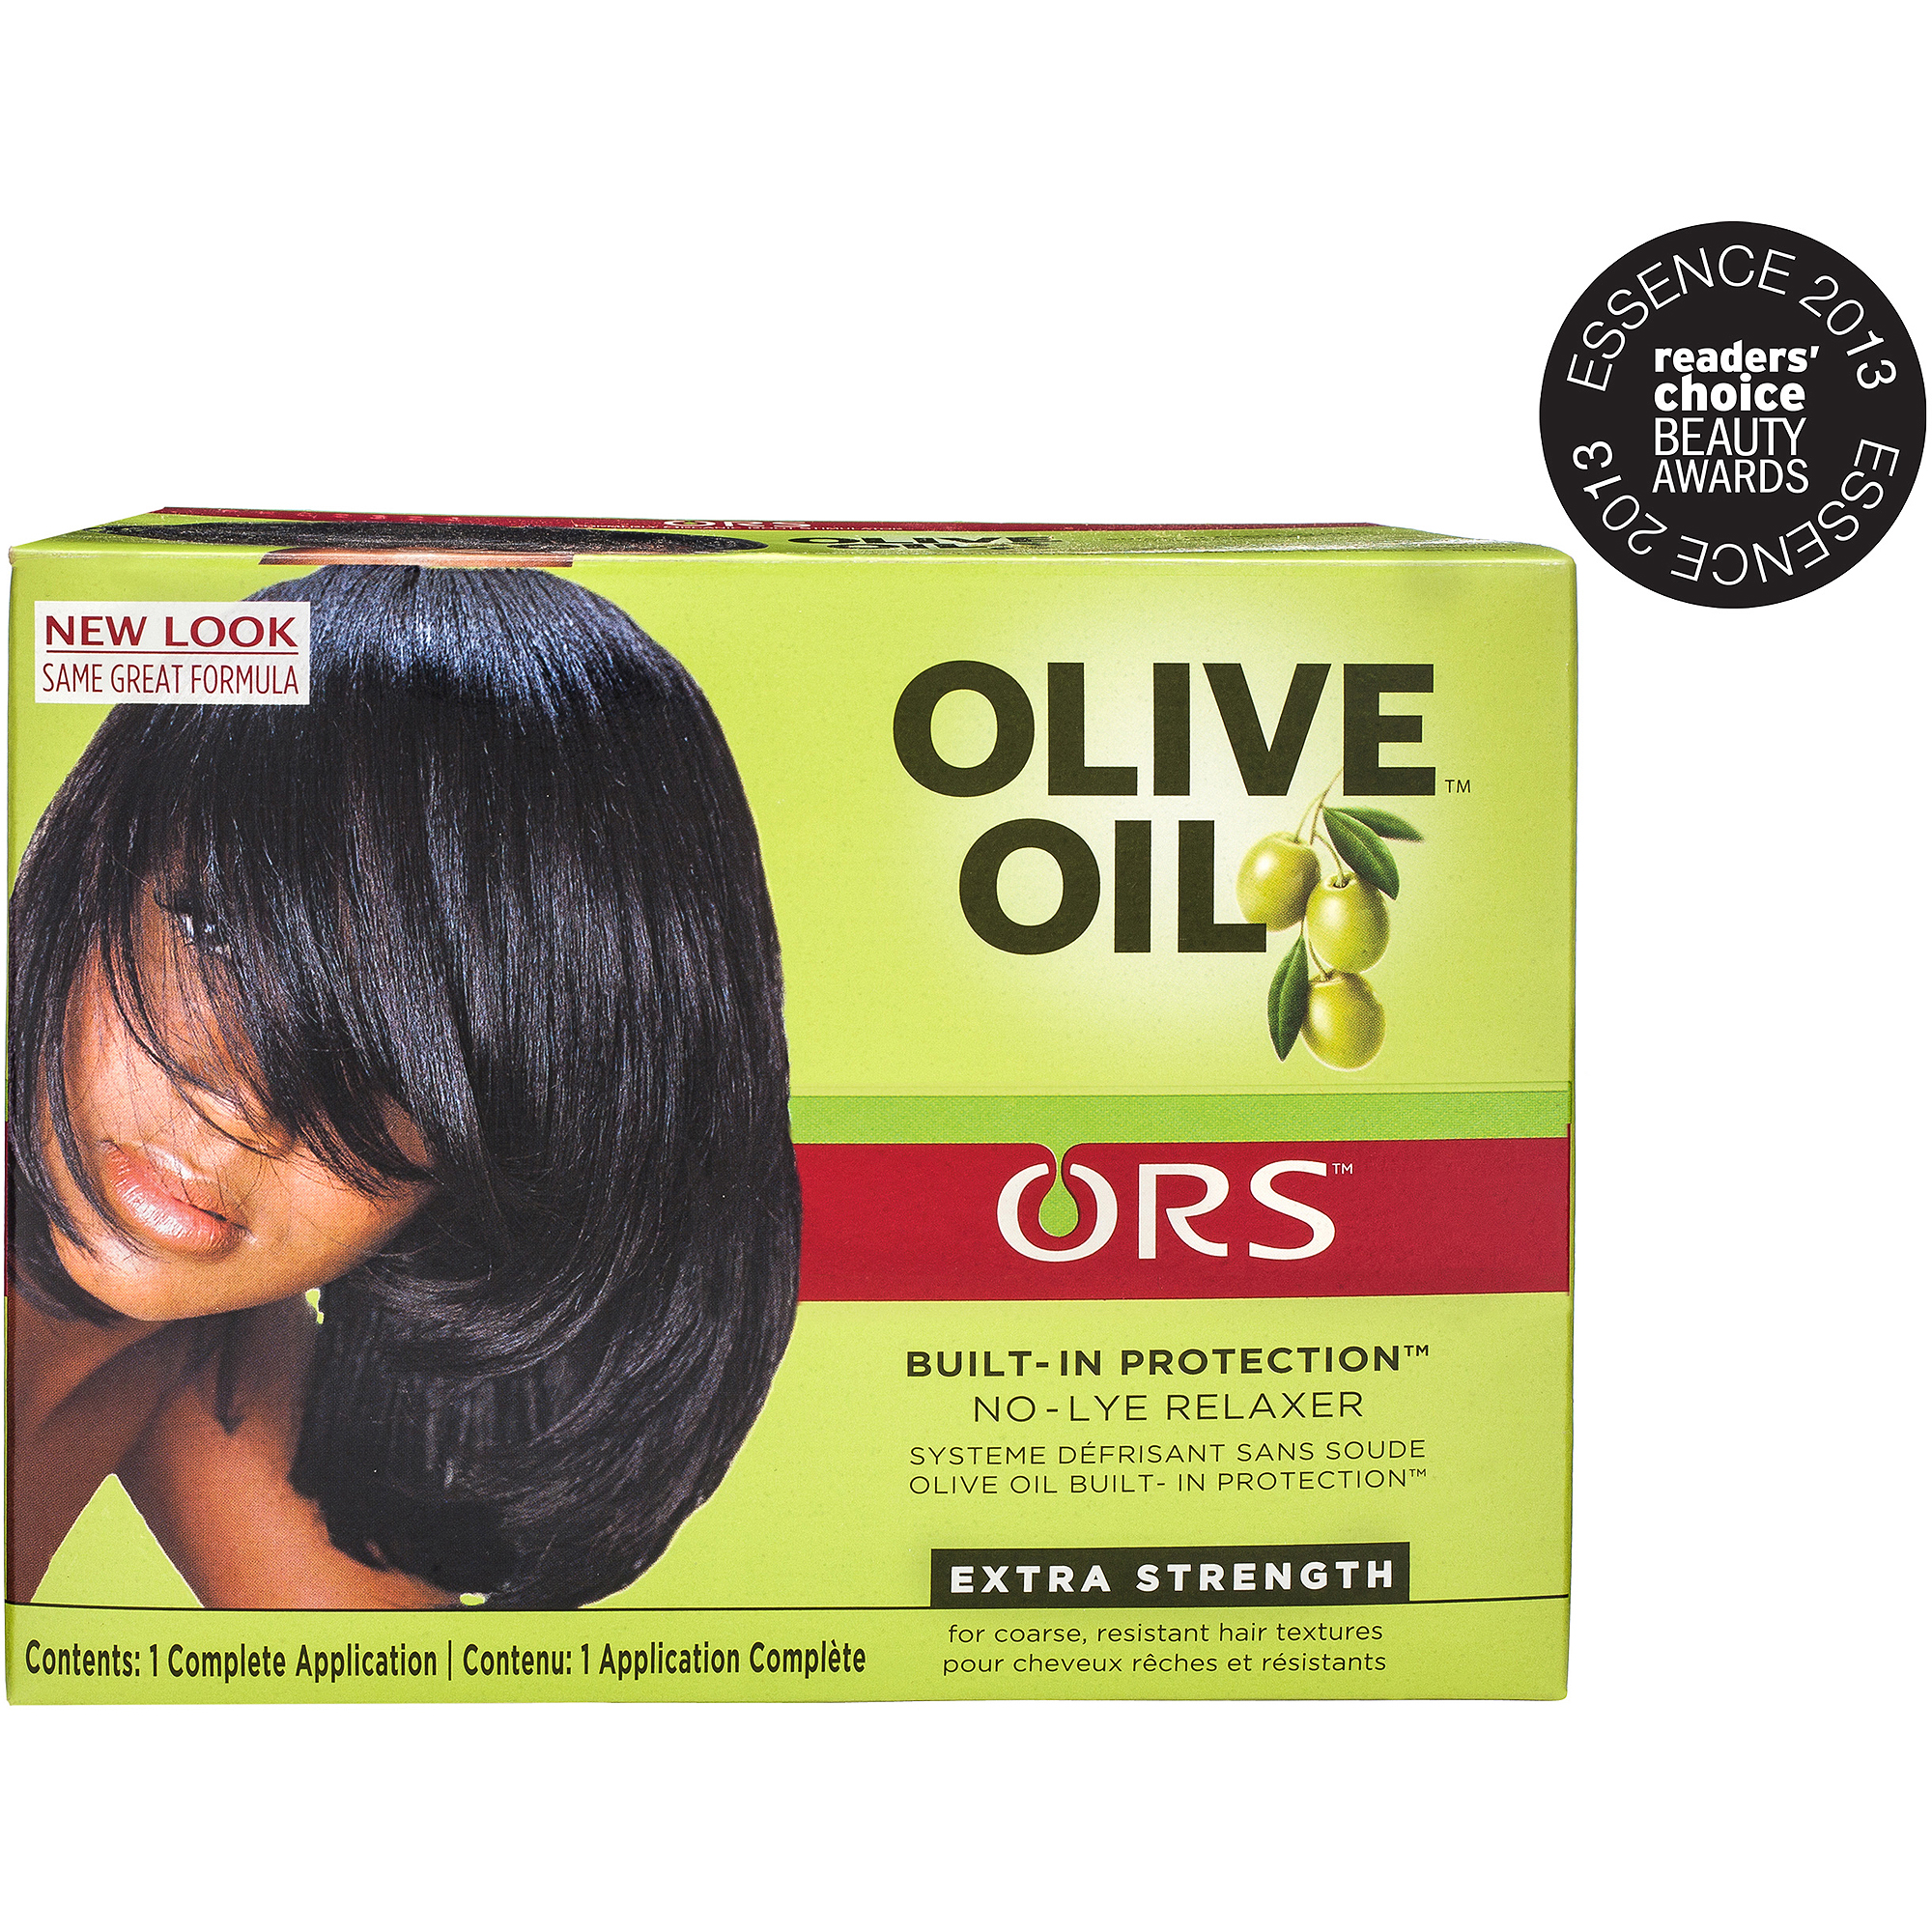 ORS��� Olive Oil Built-In Protection No-Lye Hair Relaxer���  Extra Strength